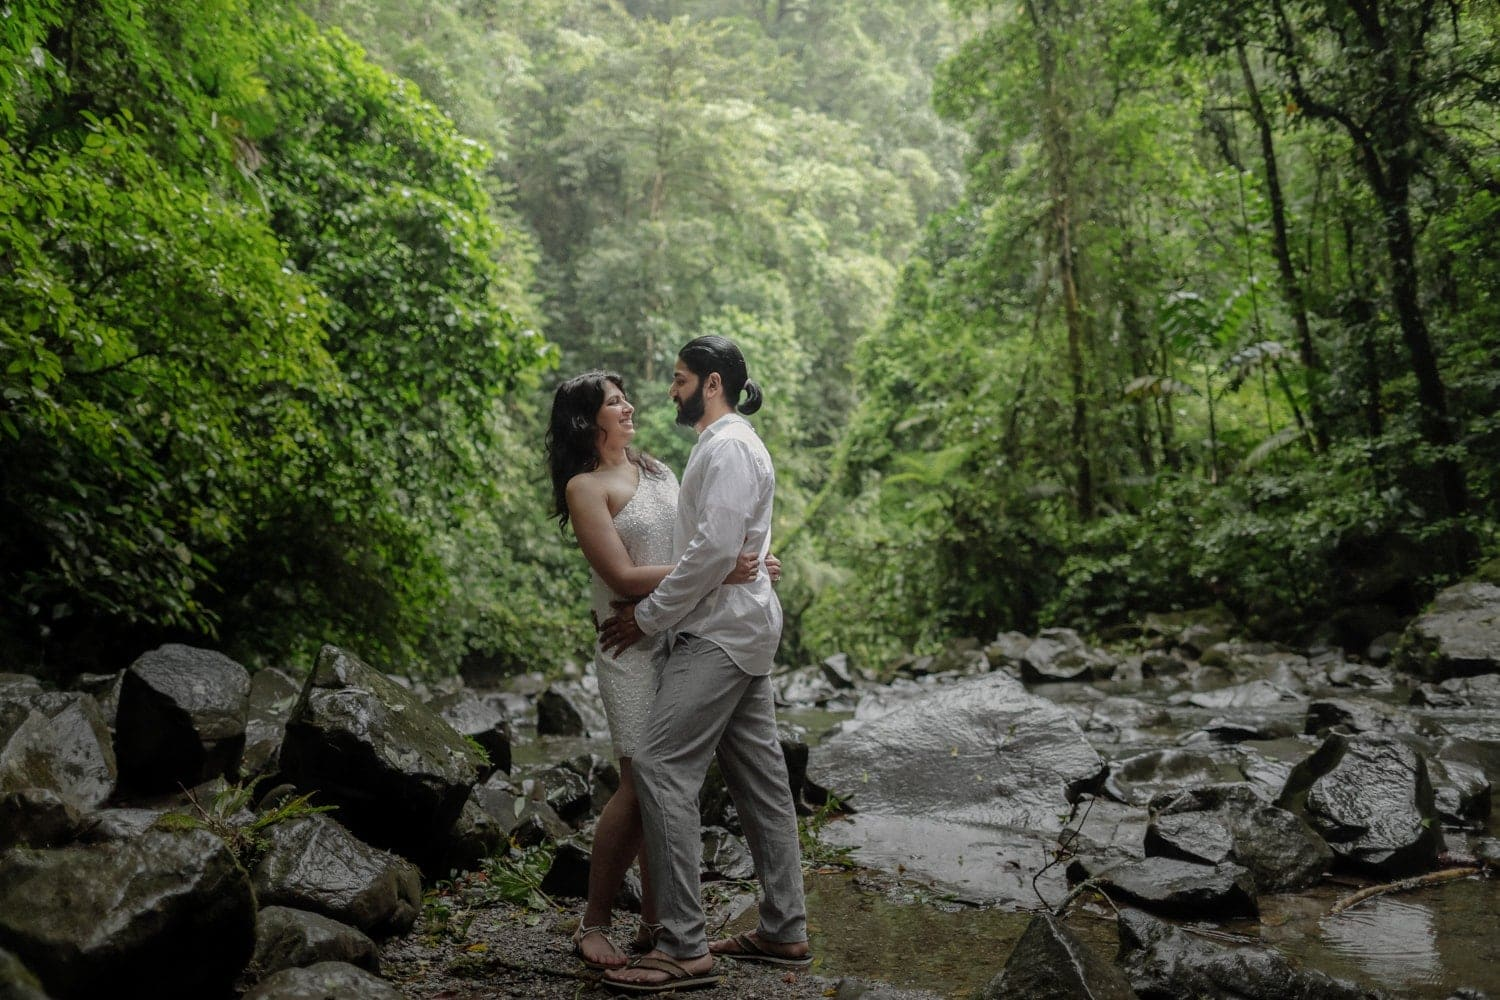 Amberene-Farhan-Engagement-Photos-La-Fortuna-Waterfall-2.jpg